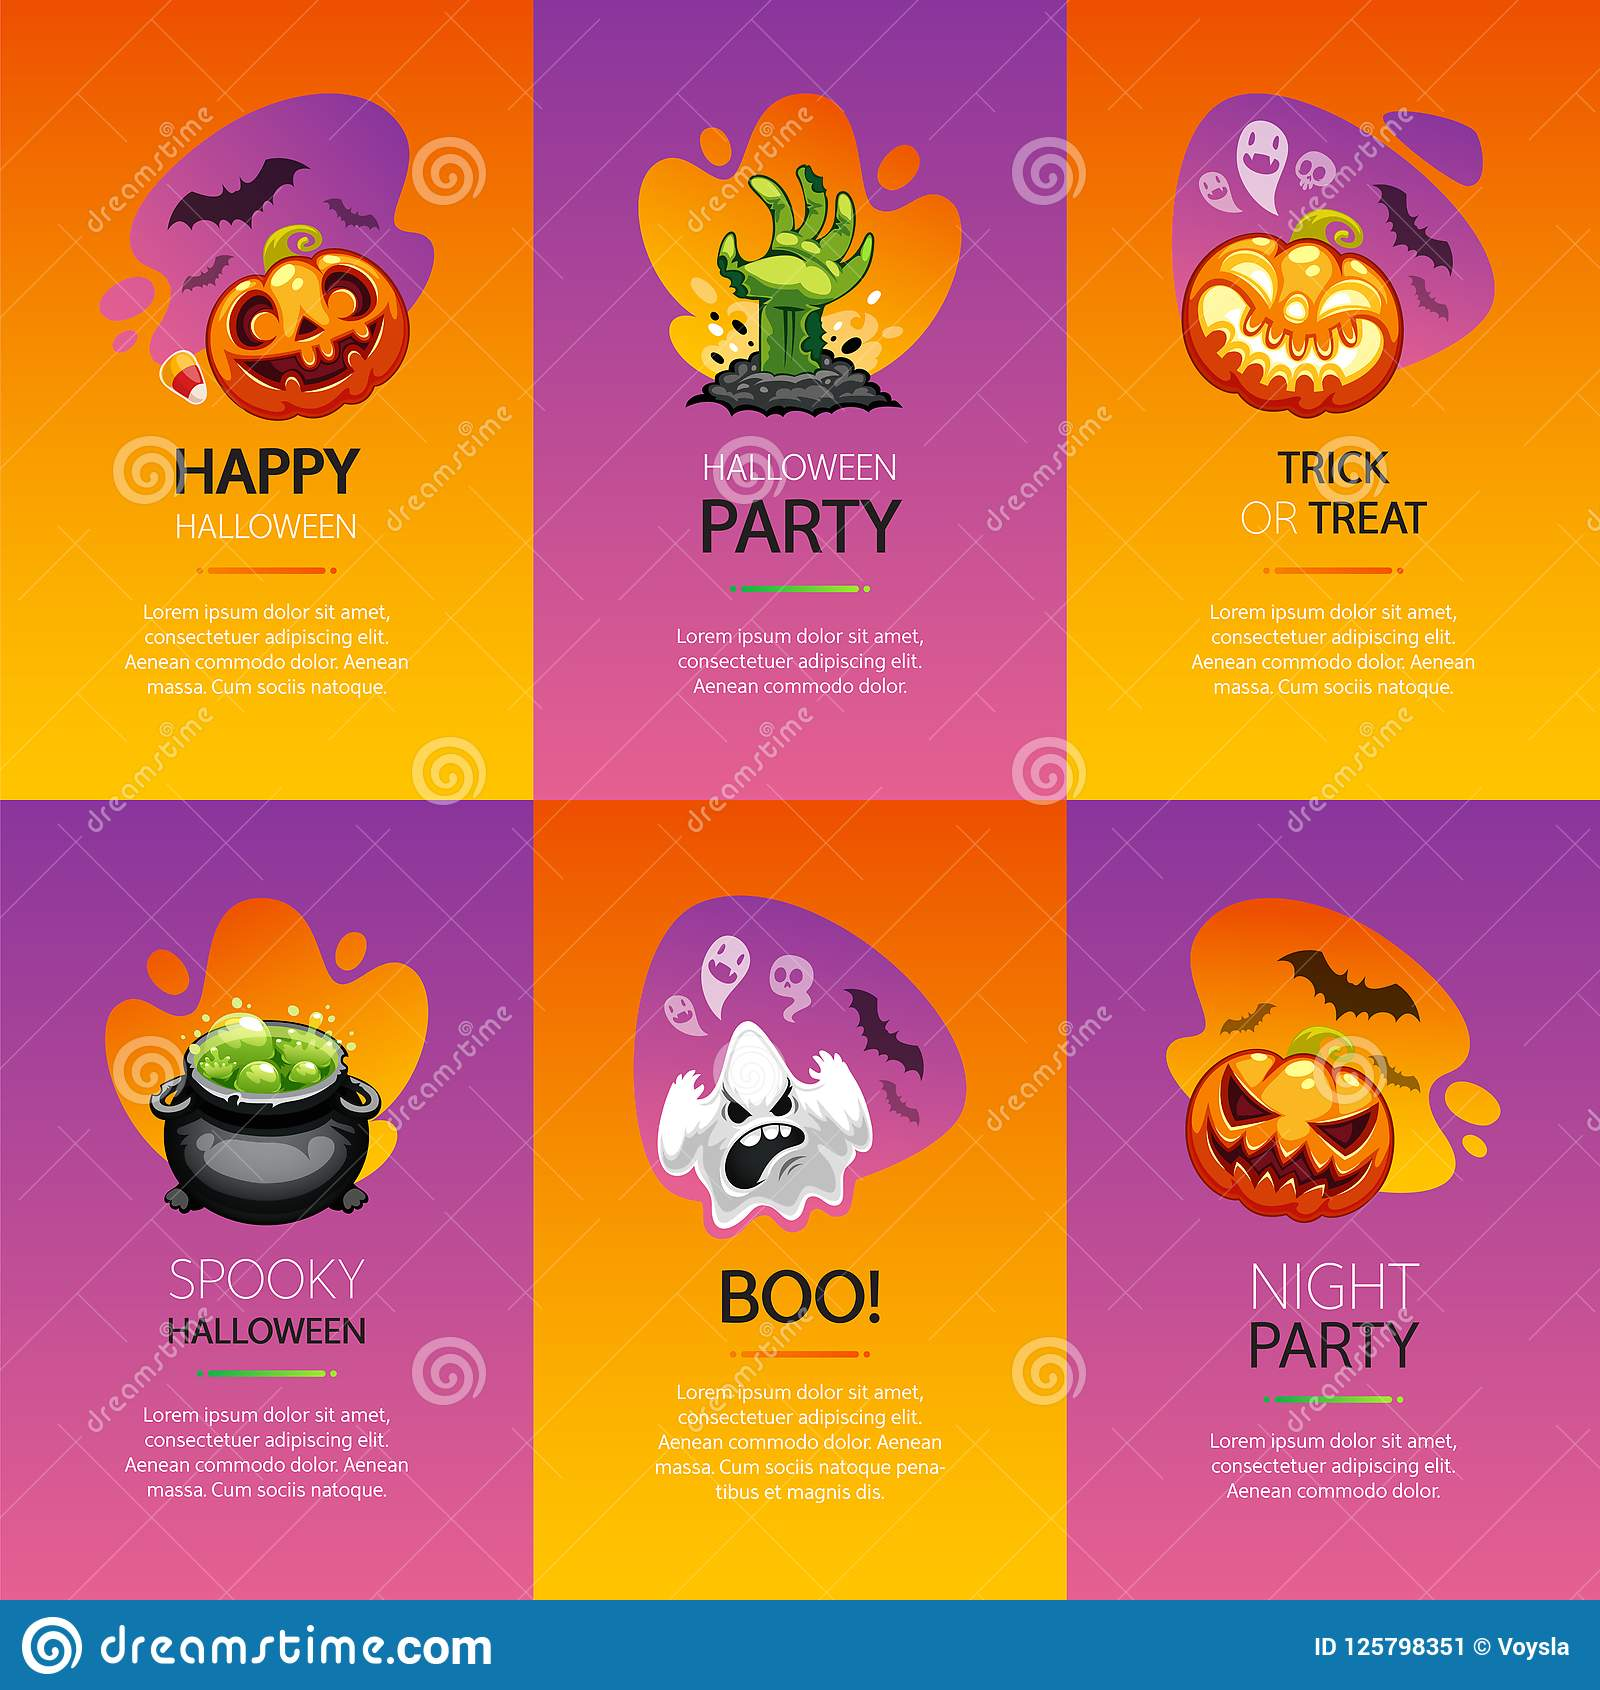 Halloween greeting cards colorful set stock vector illustration of download halloween greeting cards colorful set stock vector illustration of boiler graphic 125798351 m4hsunfo